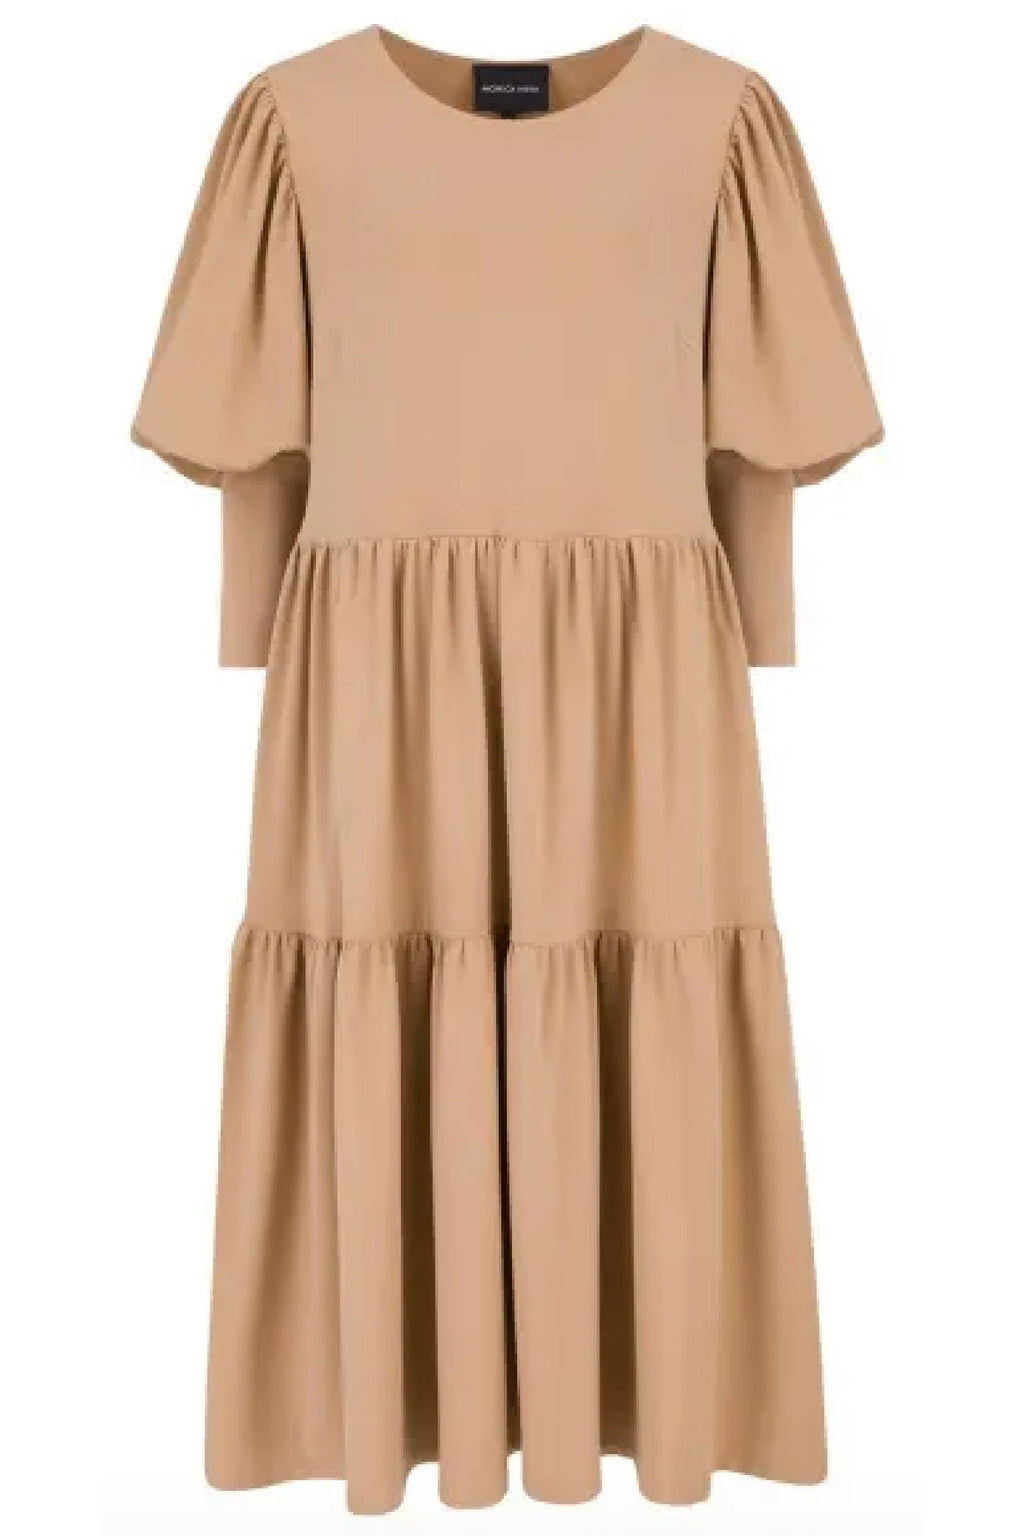 TAMARA SPORT DRESS in CAMEL